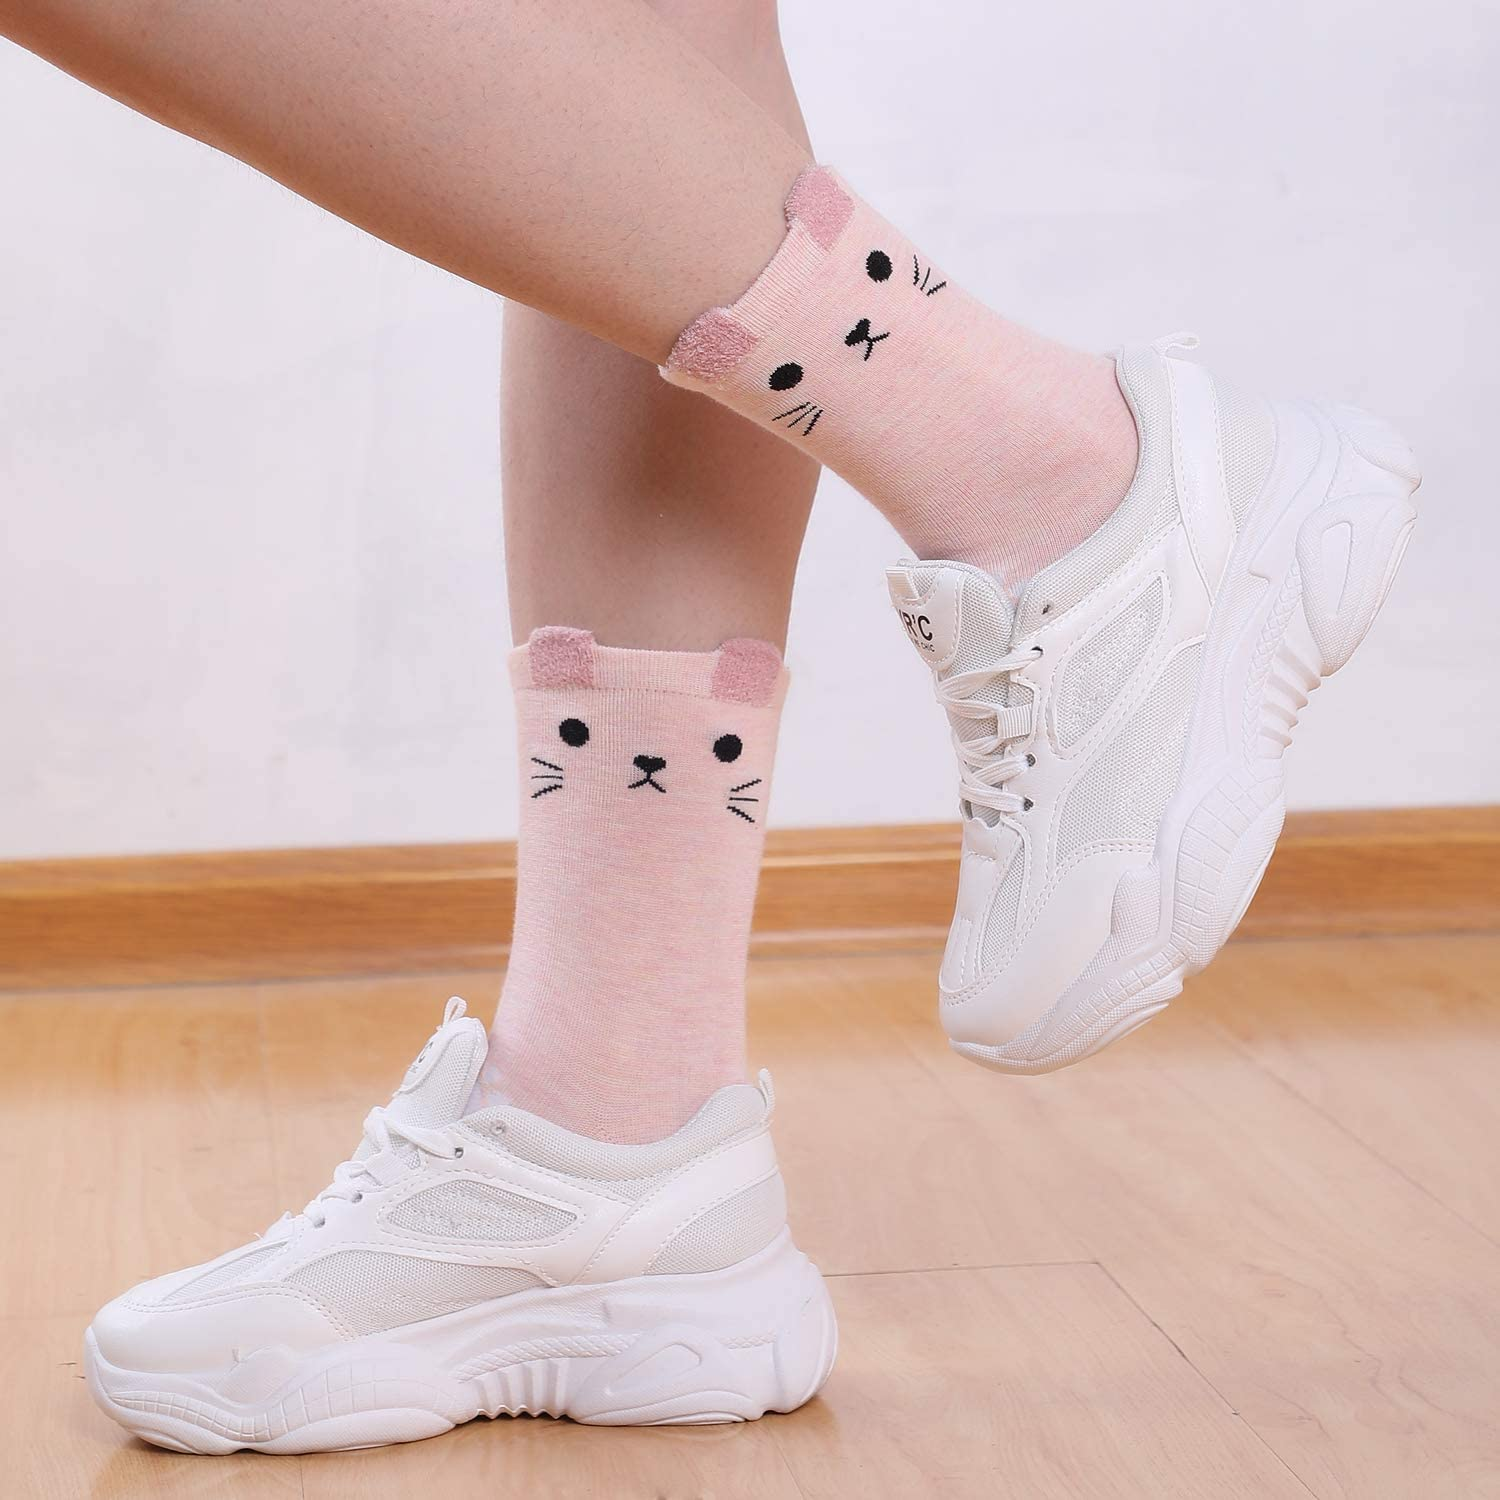 Jeasona Ladies Animal Fruit Socks Cute Funny Novelty Cotton Cat Gifts for Cat Lovers